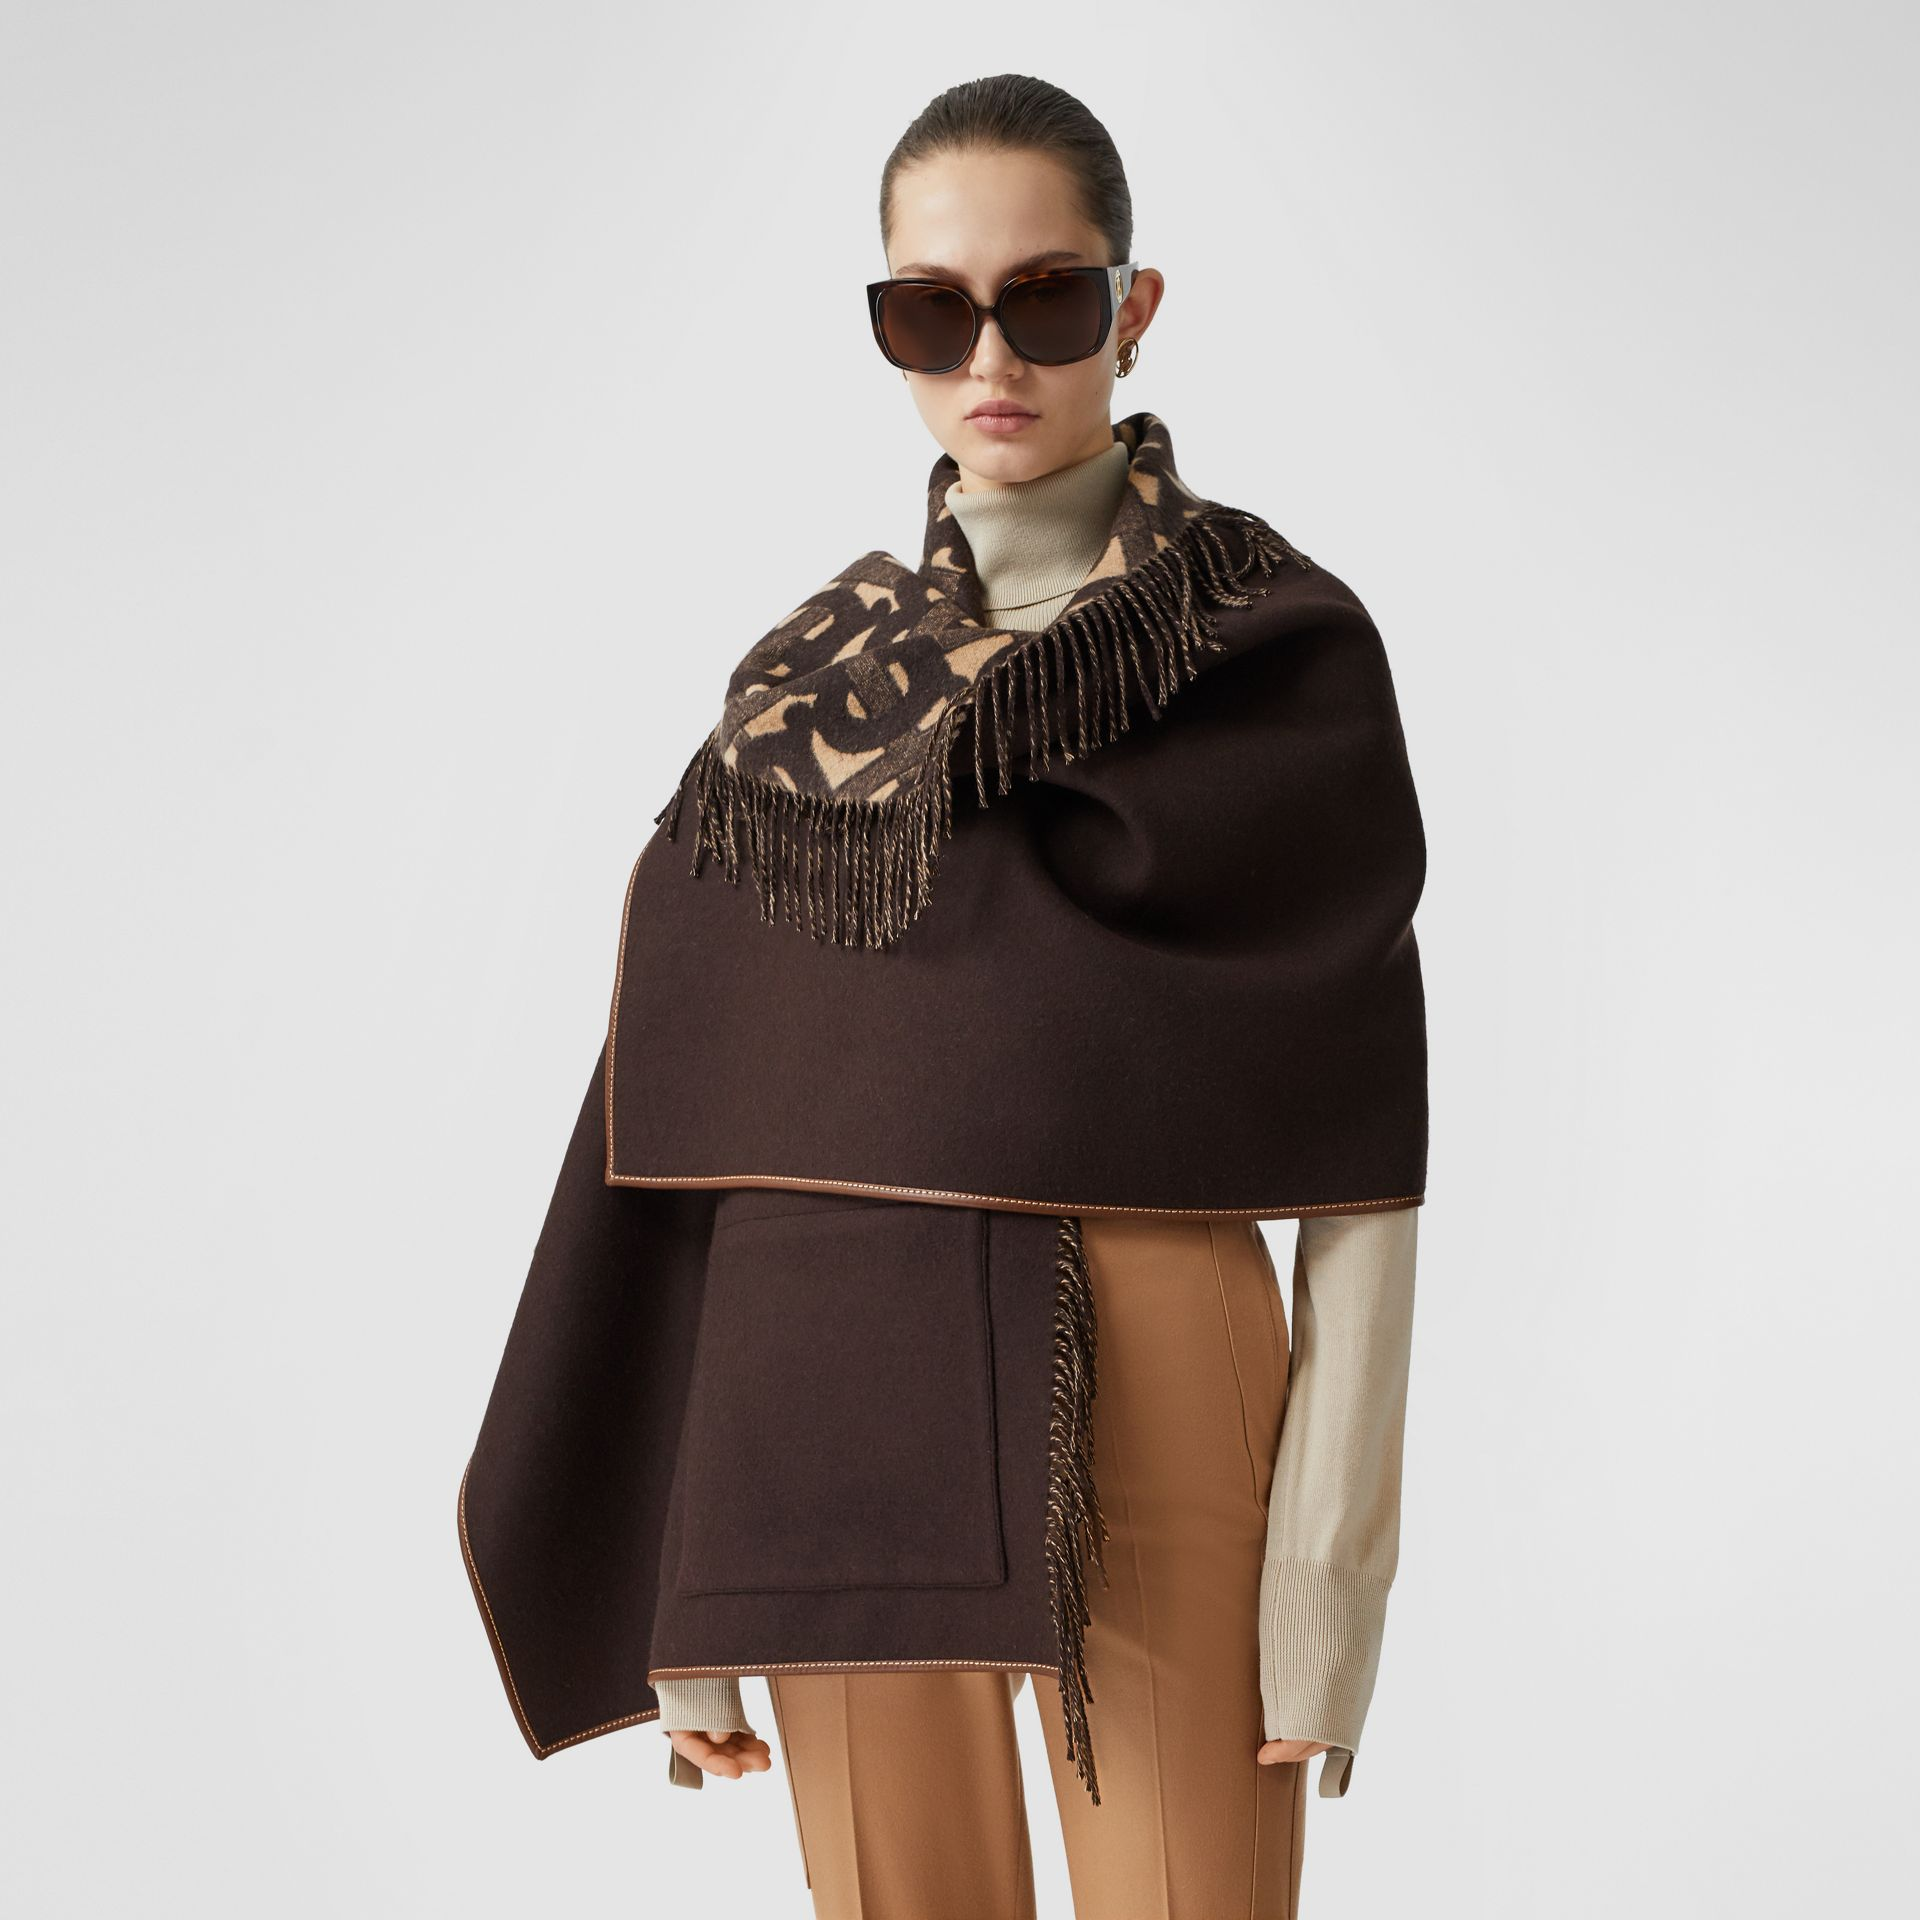 Monogram Merino Wool Cashmere Jacquard Cape in Deep Brown - Women | Burberry United Kingdom - gallery image 4